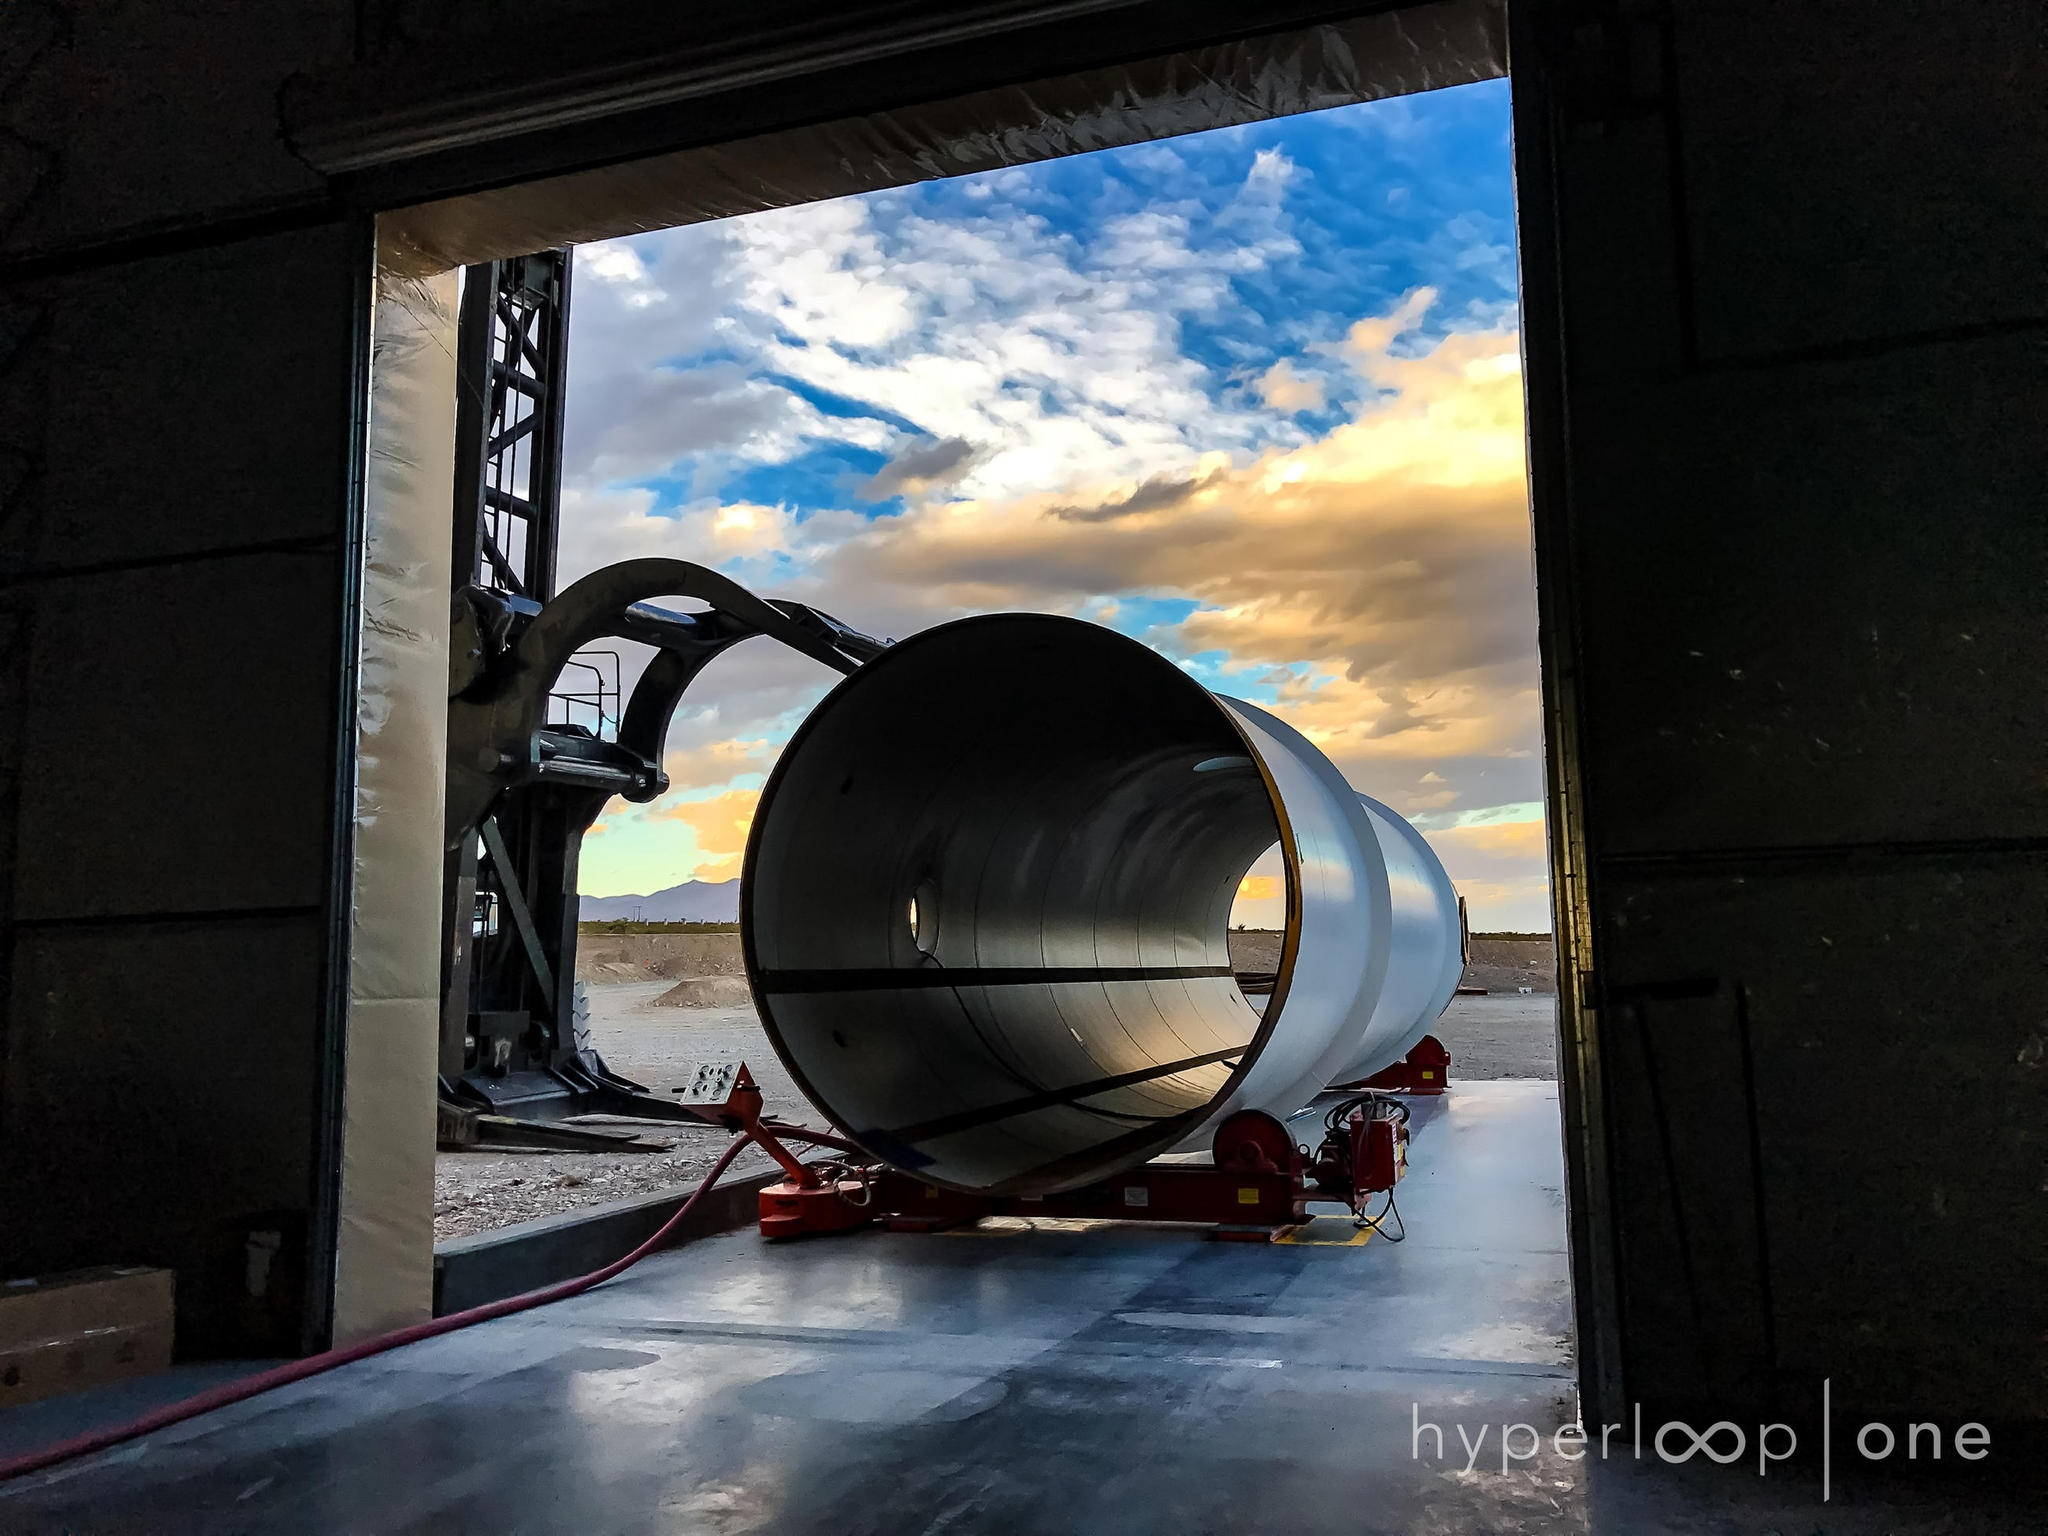 Hyperloop 5